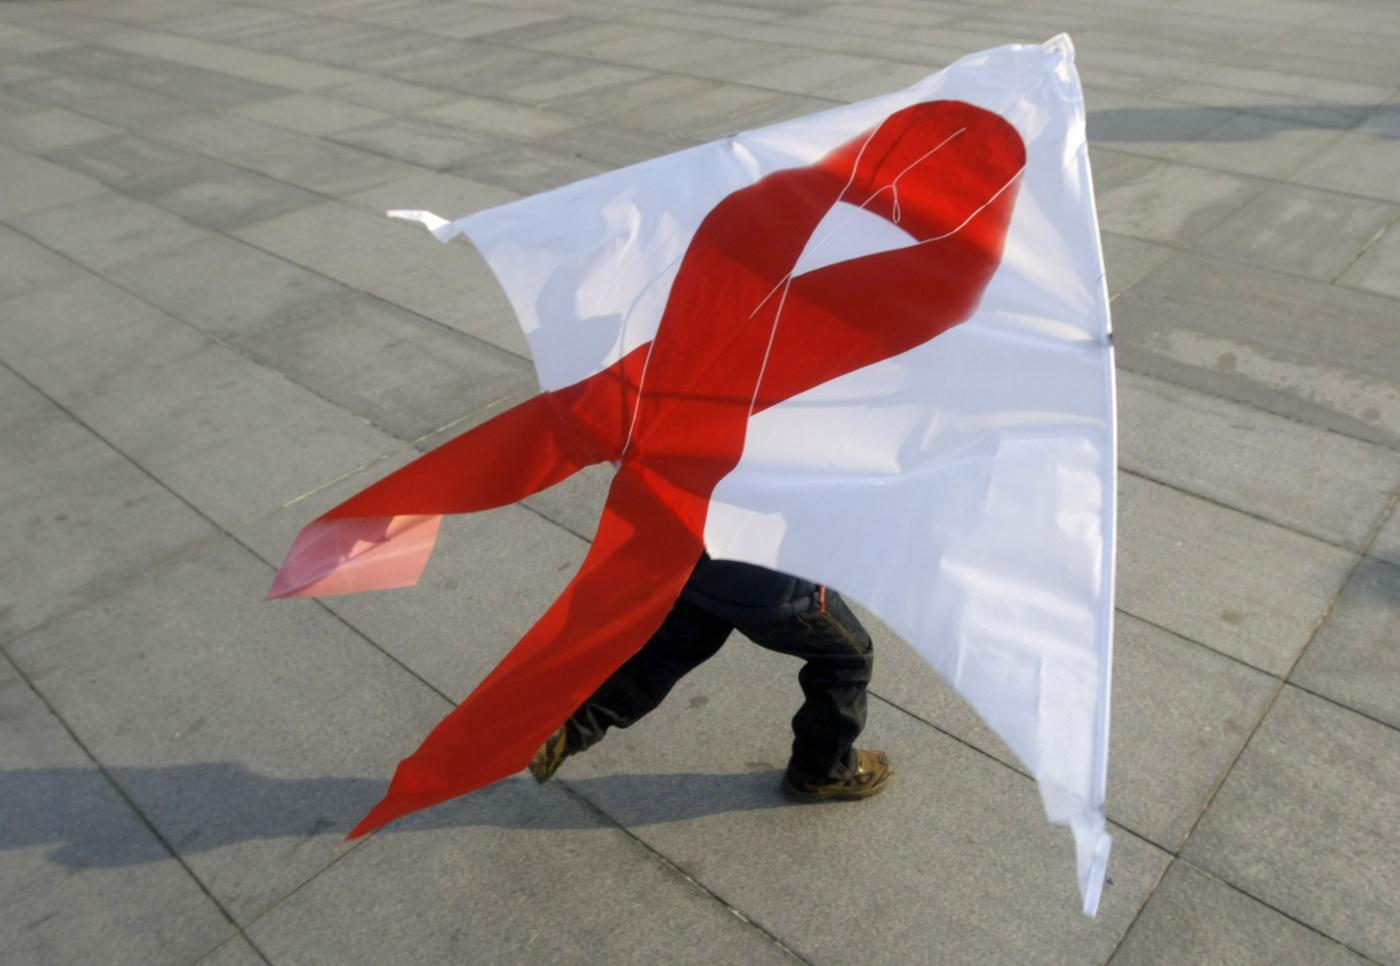 More Young People Infected With HIV